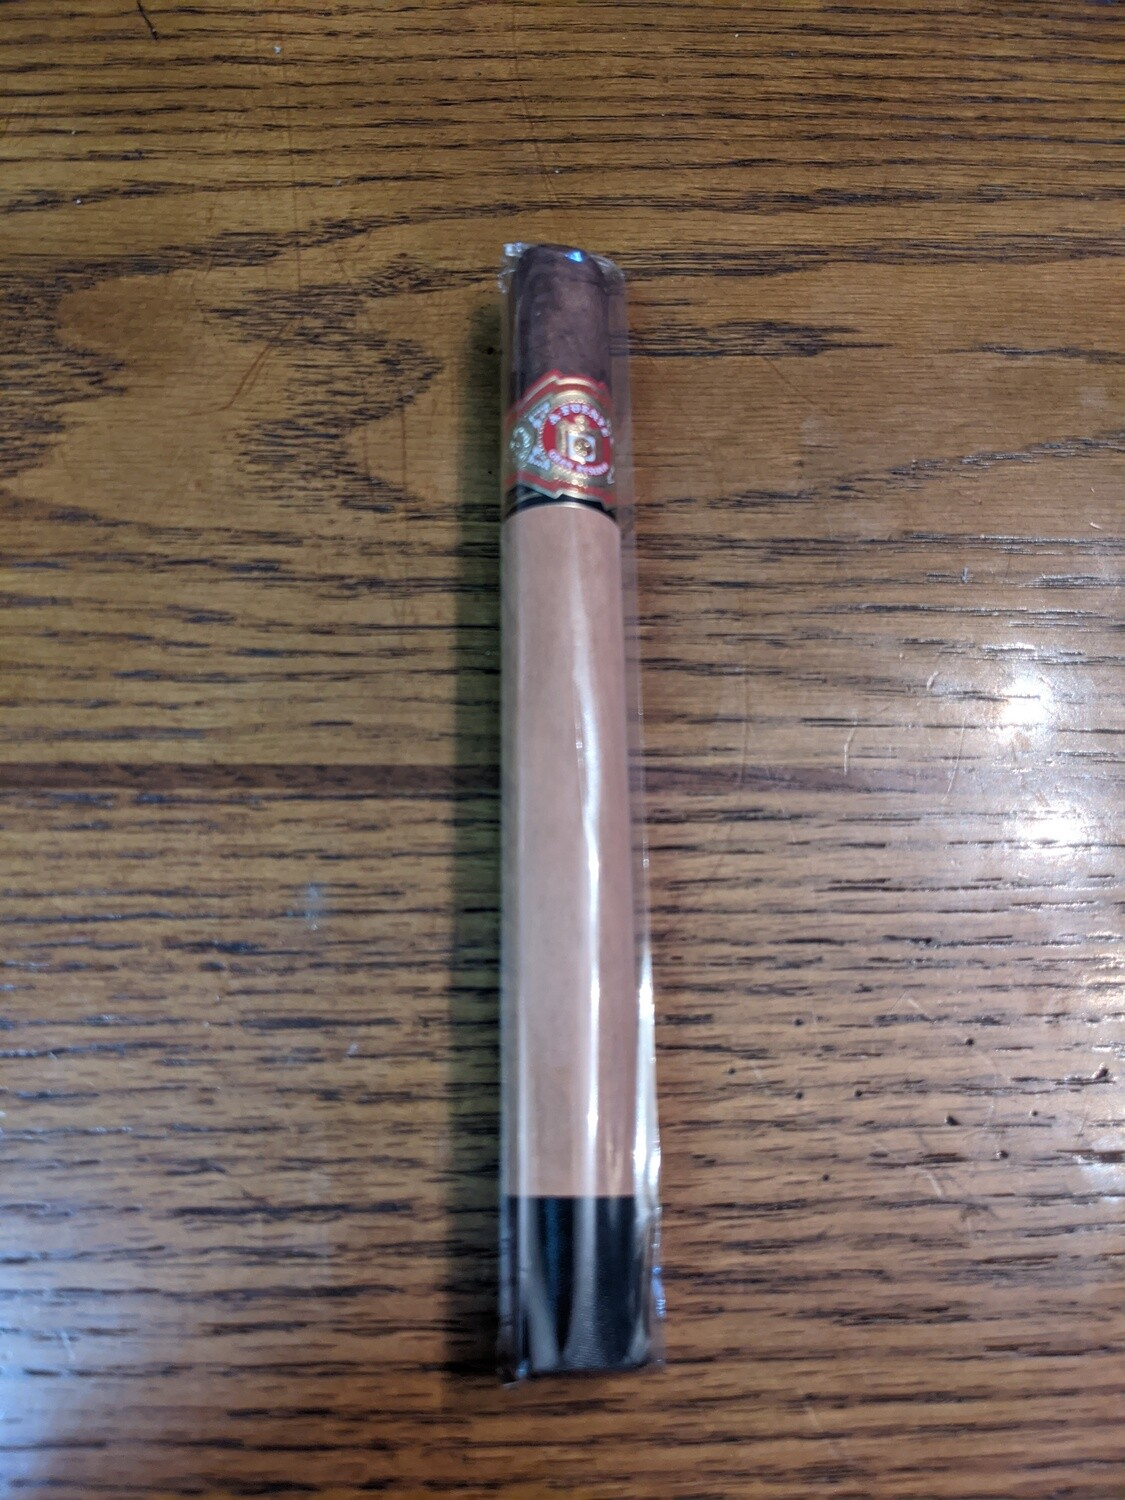 Arturo Fuente Chateau Fuente Sungrown Royal Salute Single Cigar